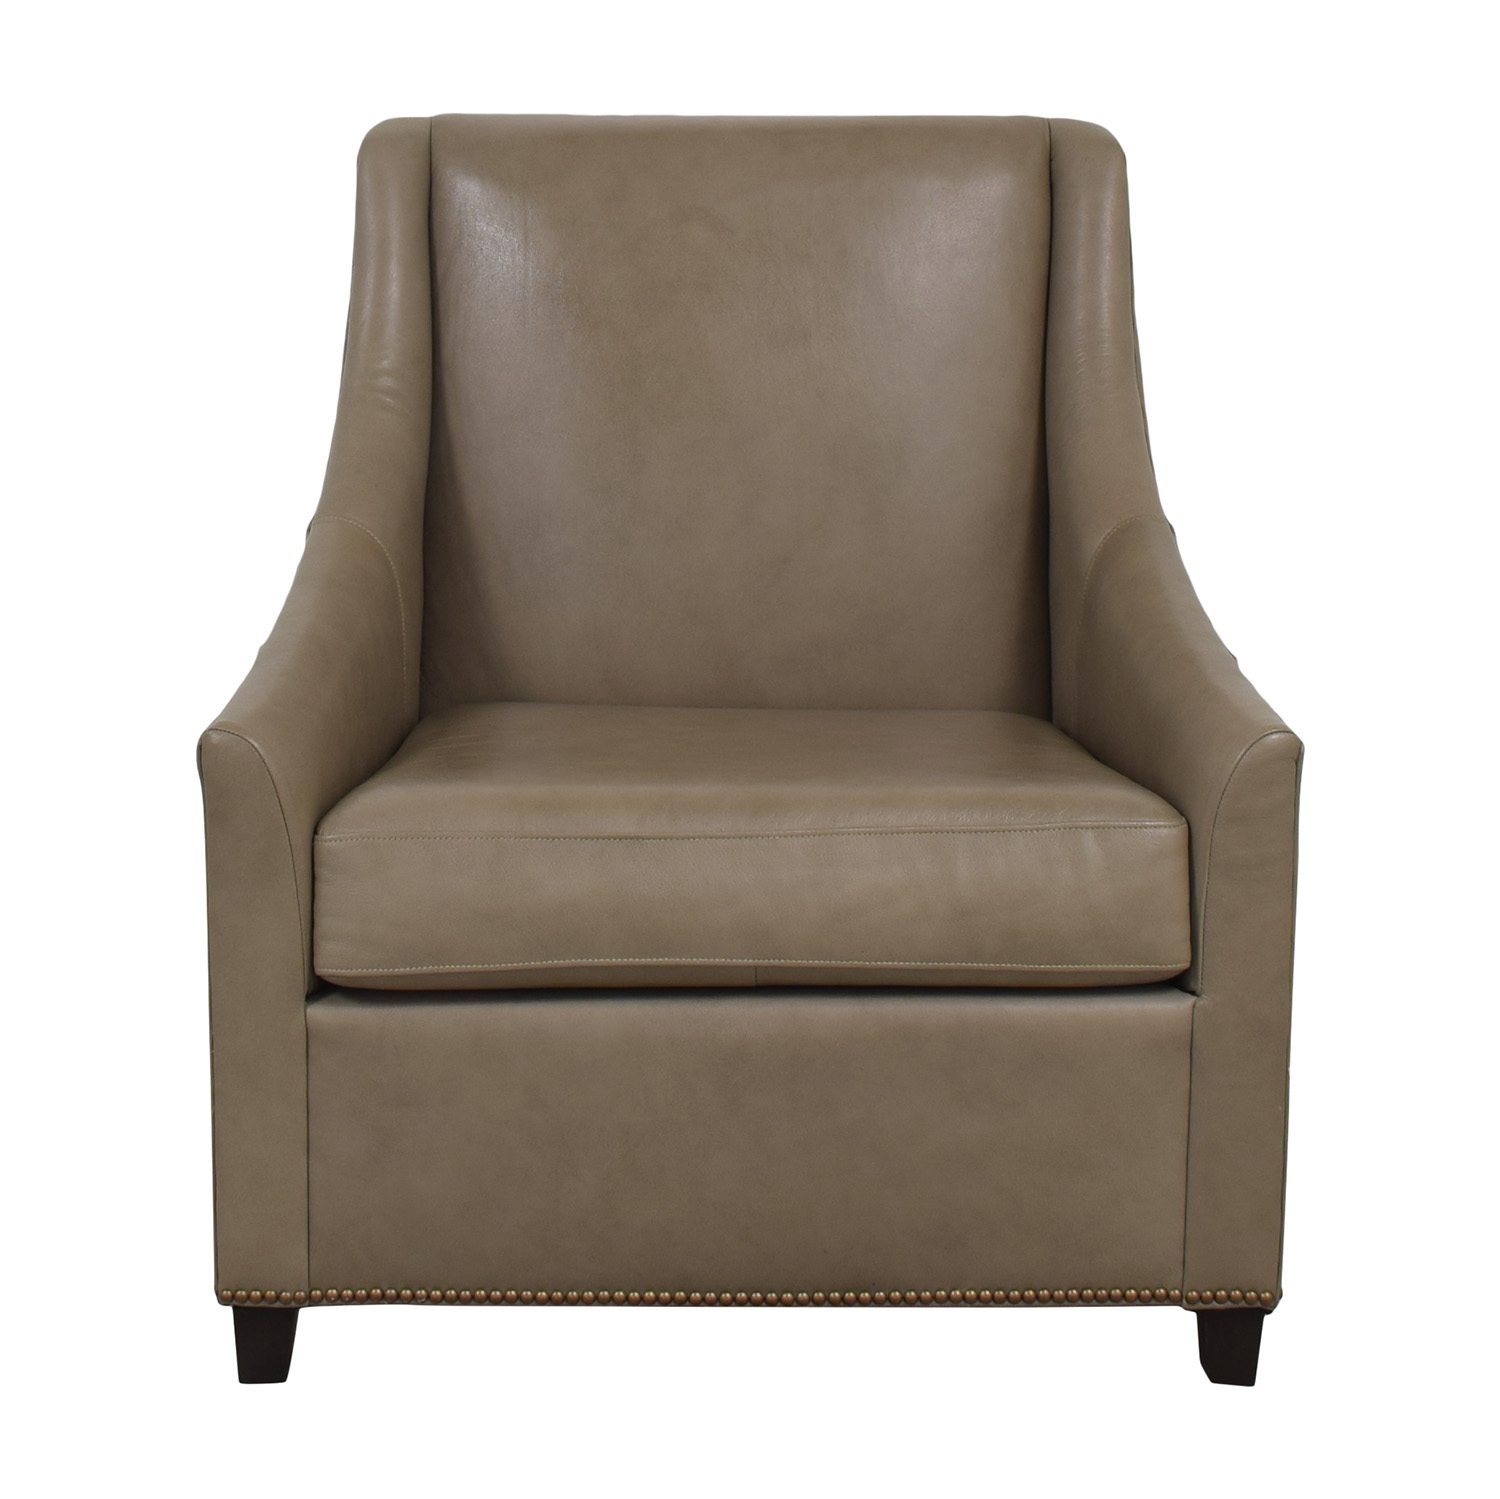 West Elm West Elm Accent Chair ct